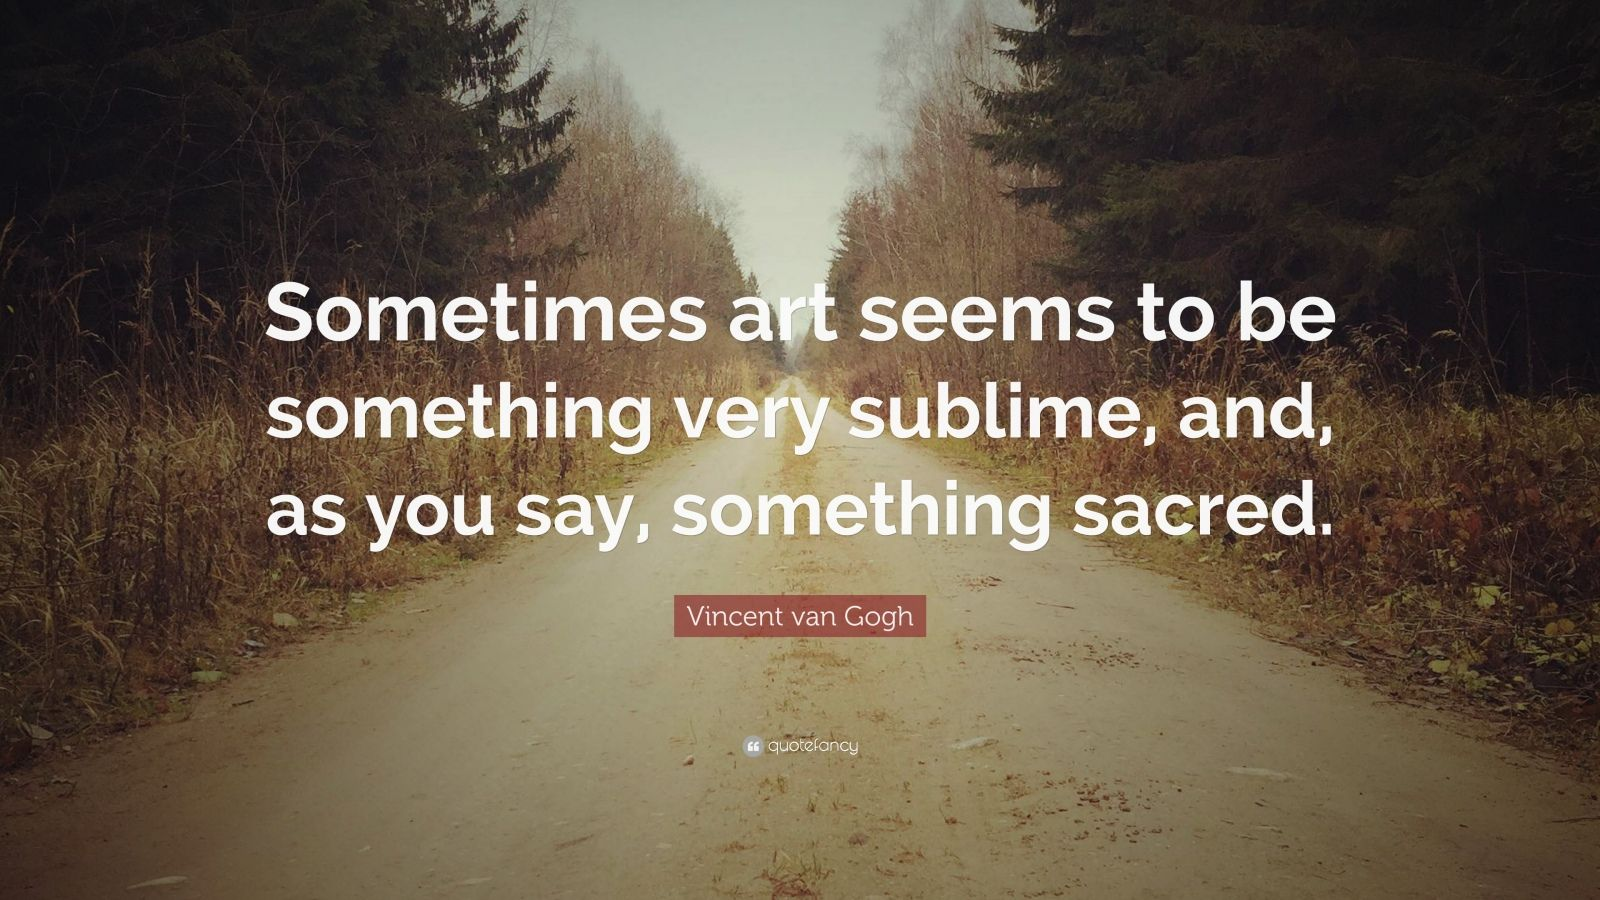 """Vincent van Gogh Quote: """"Sometimes art seems to be something very sublime, and, as you say, something sacred."""""""